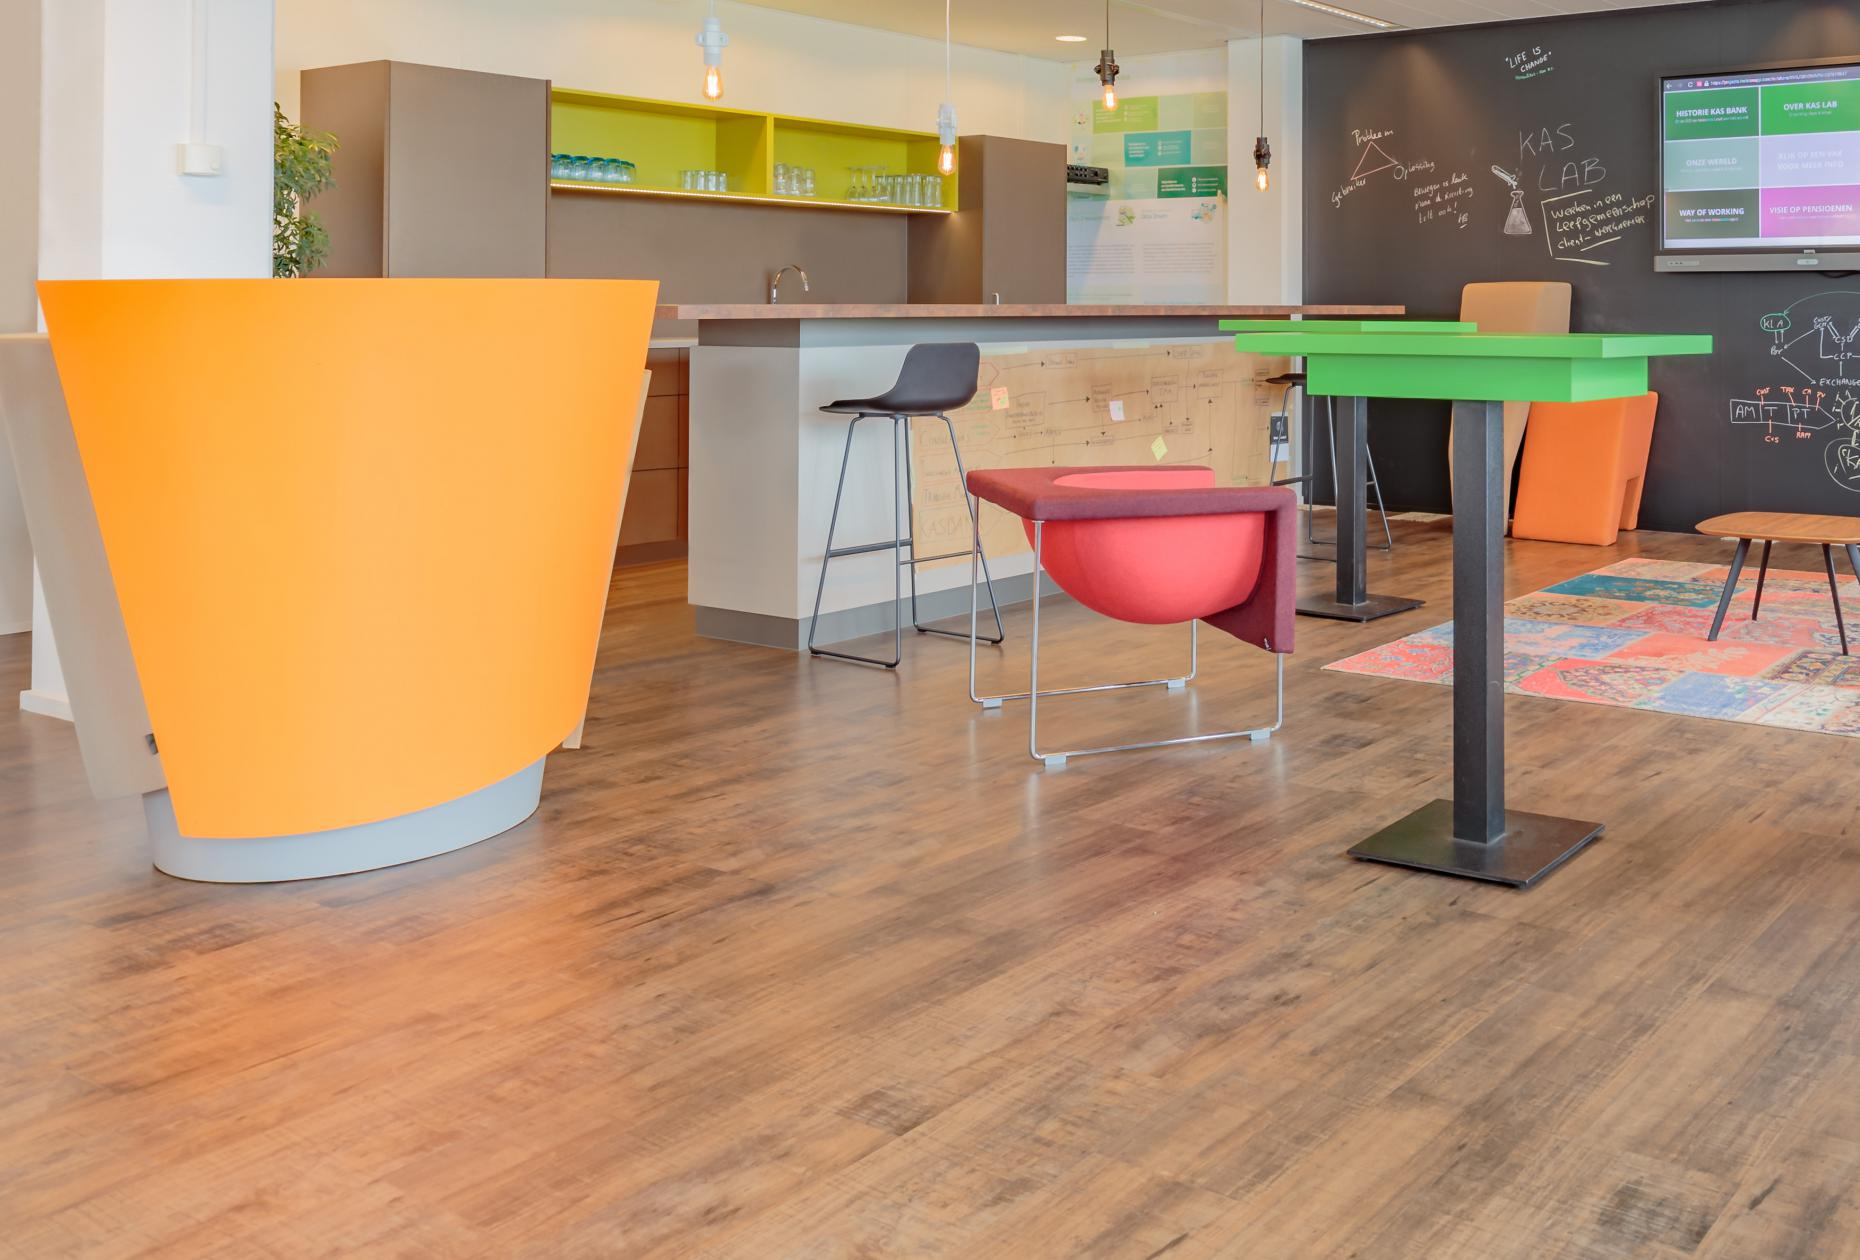 Tafel Over Bank : Prooff workspace furniture design shaping the future of work